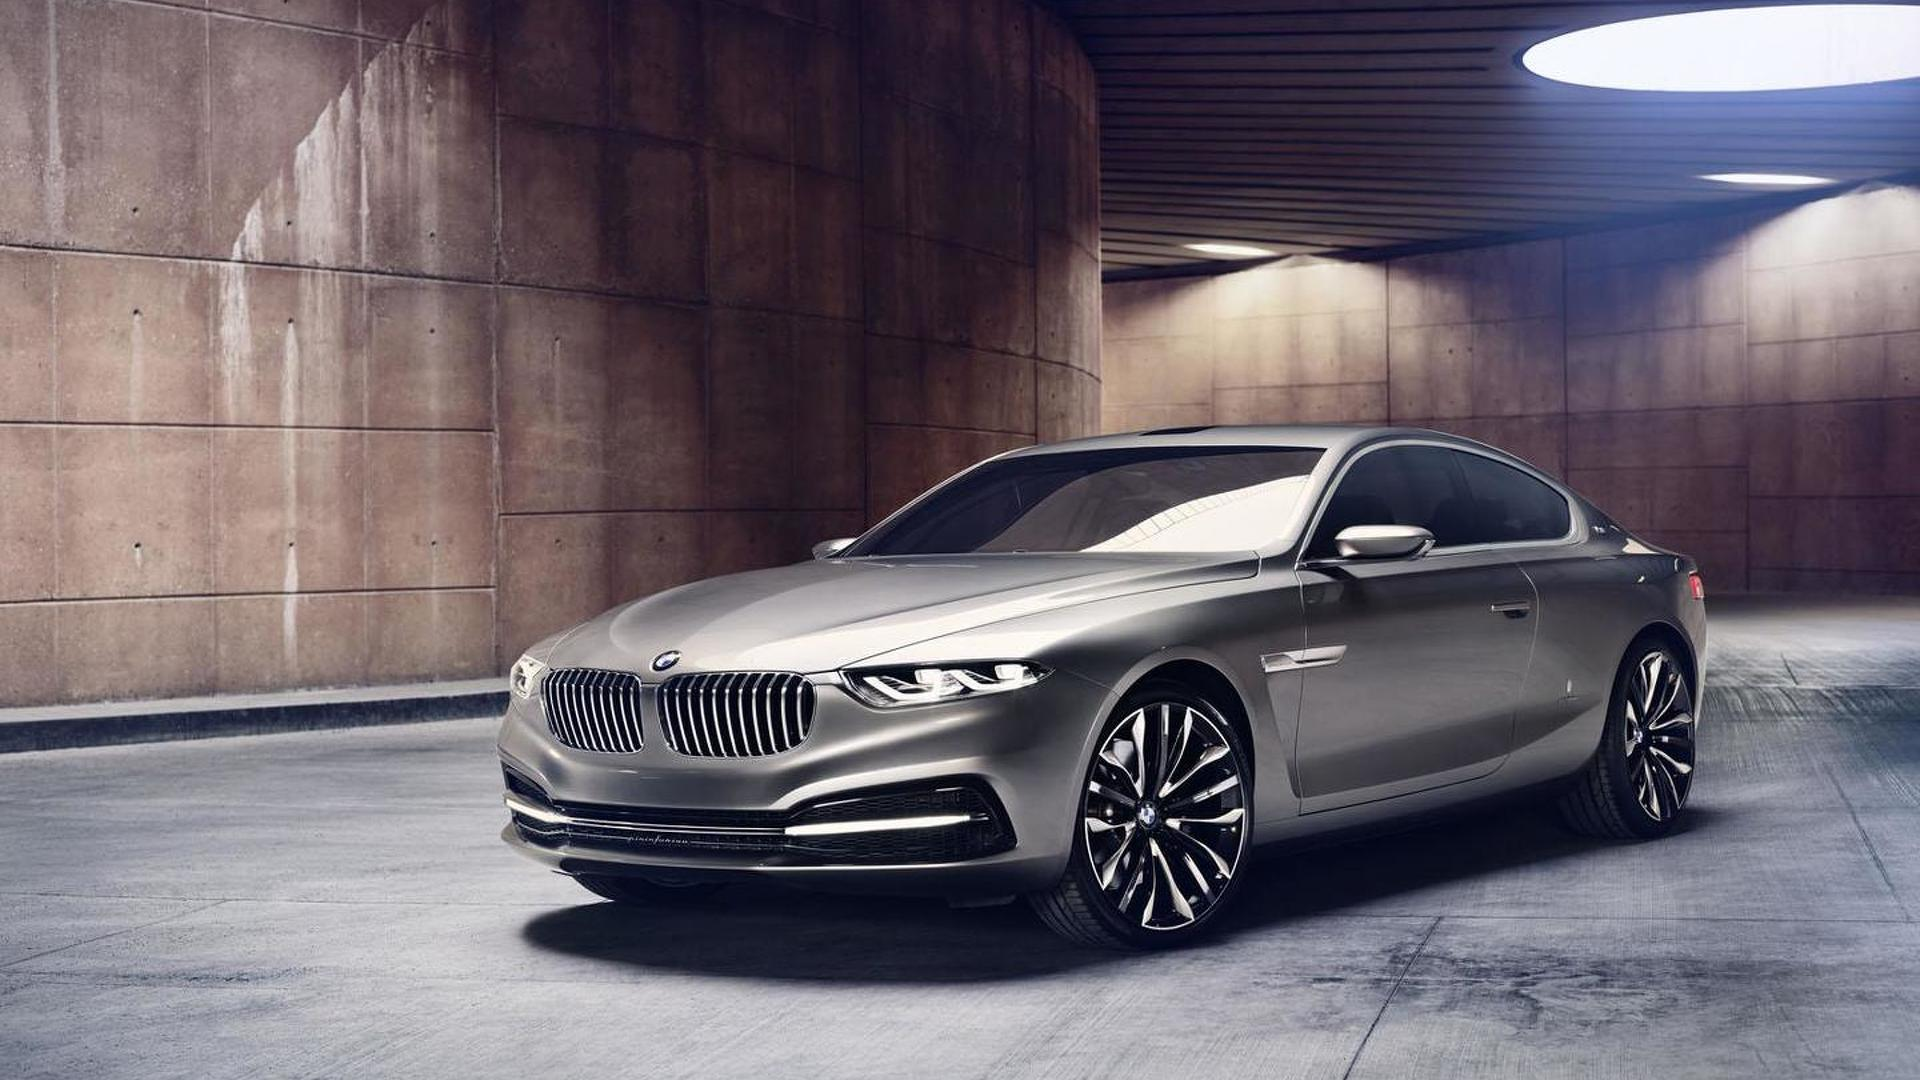 BMW Series To Have Gran Lusso Coupe Styling Influences - 5 series bmw coupe